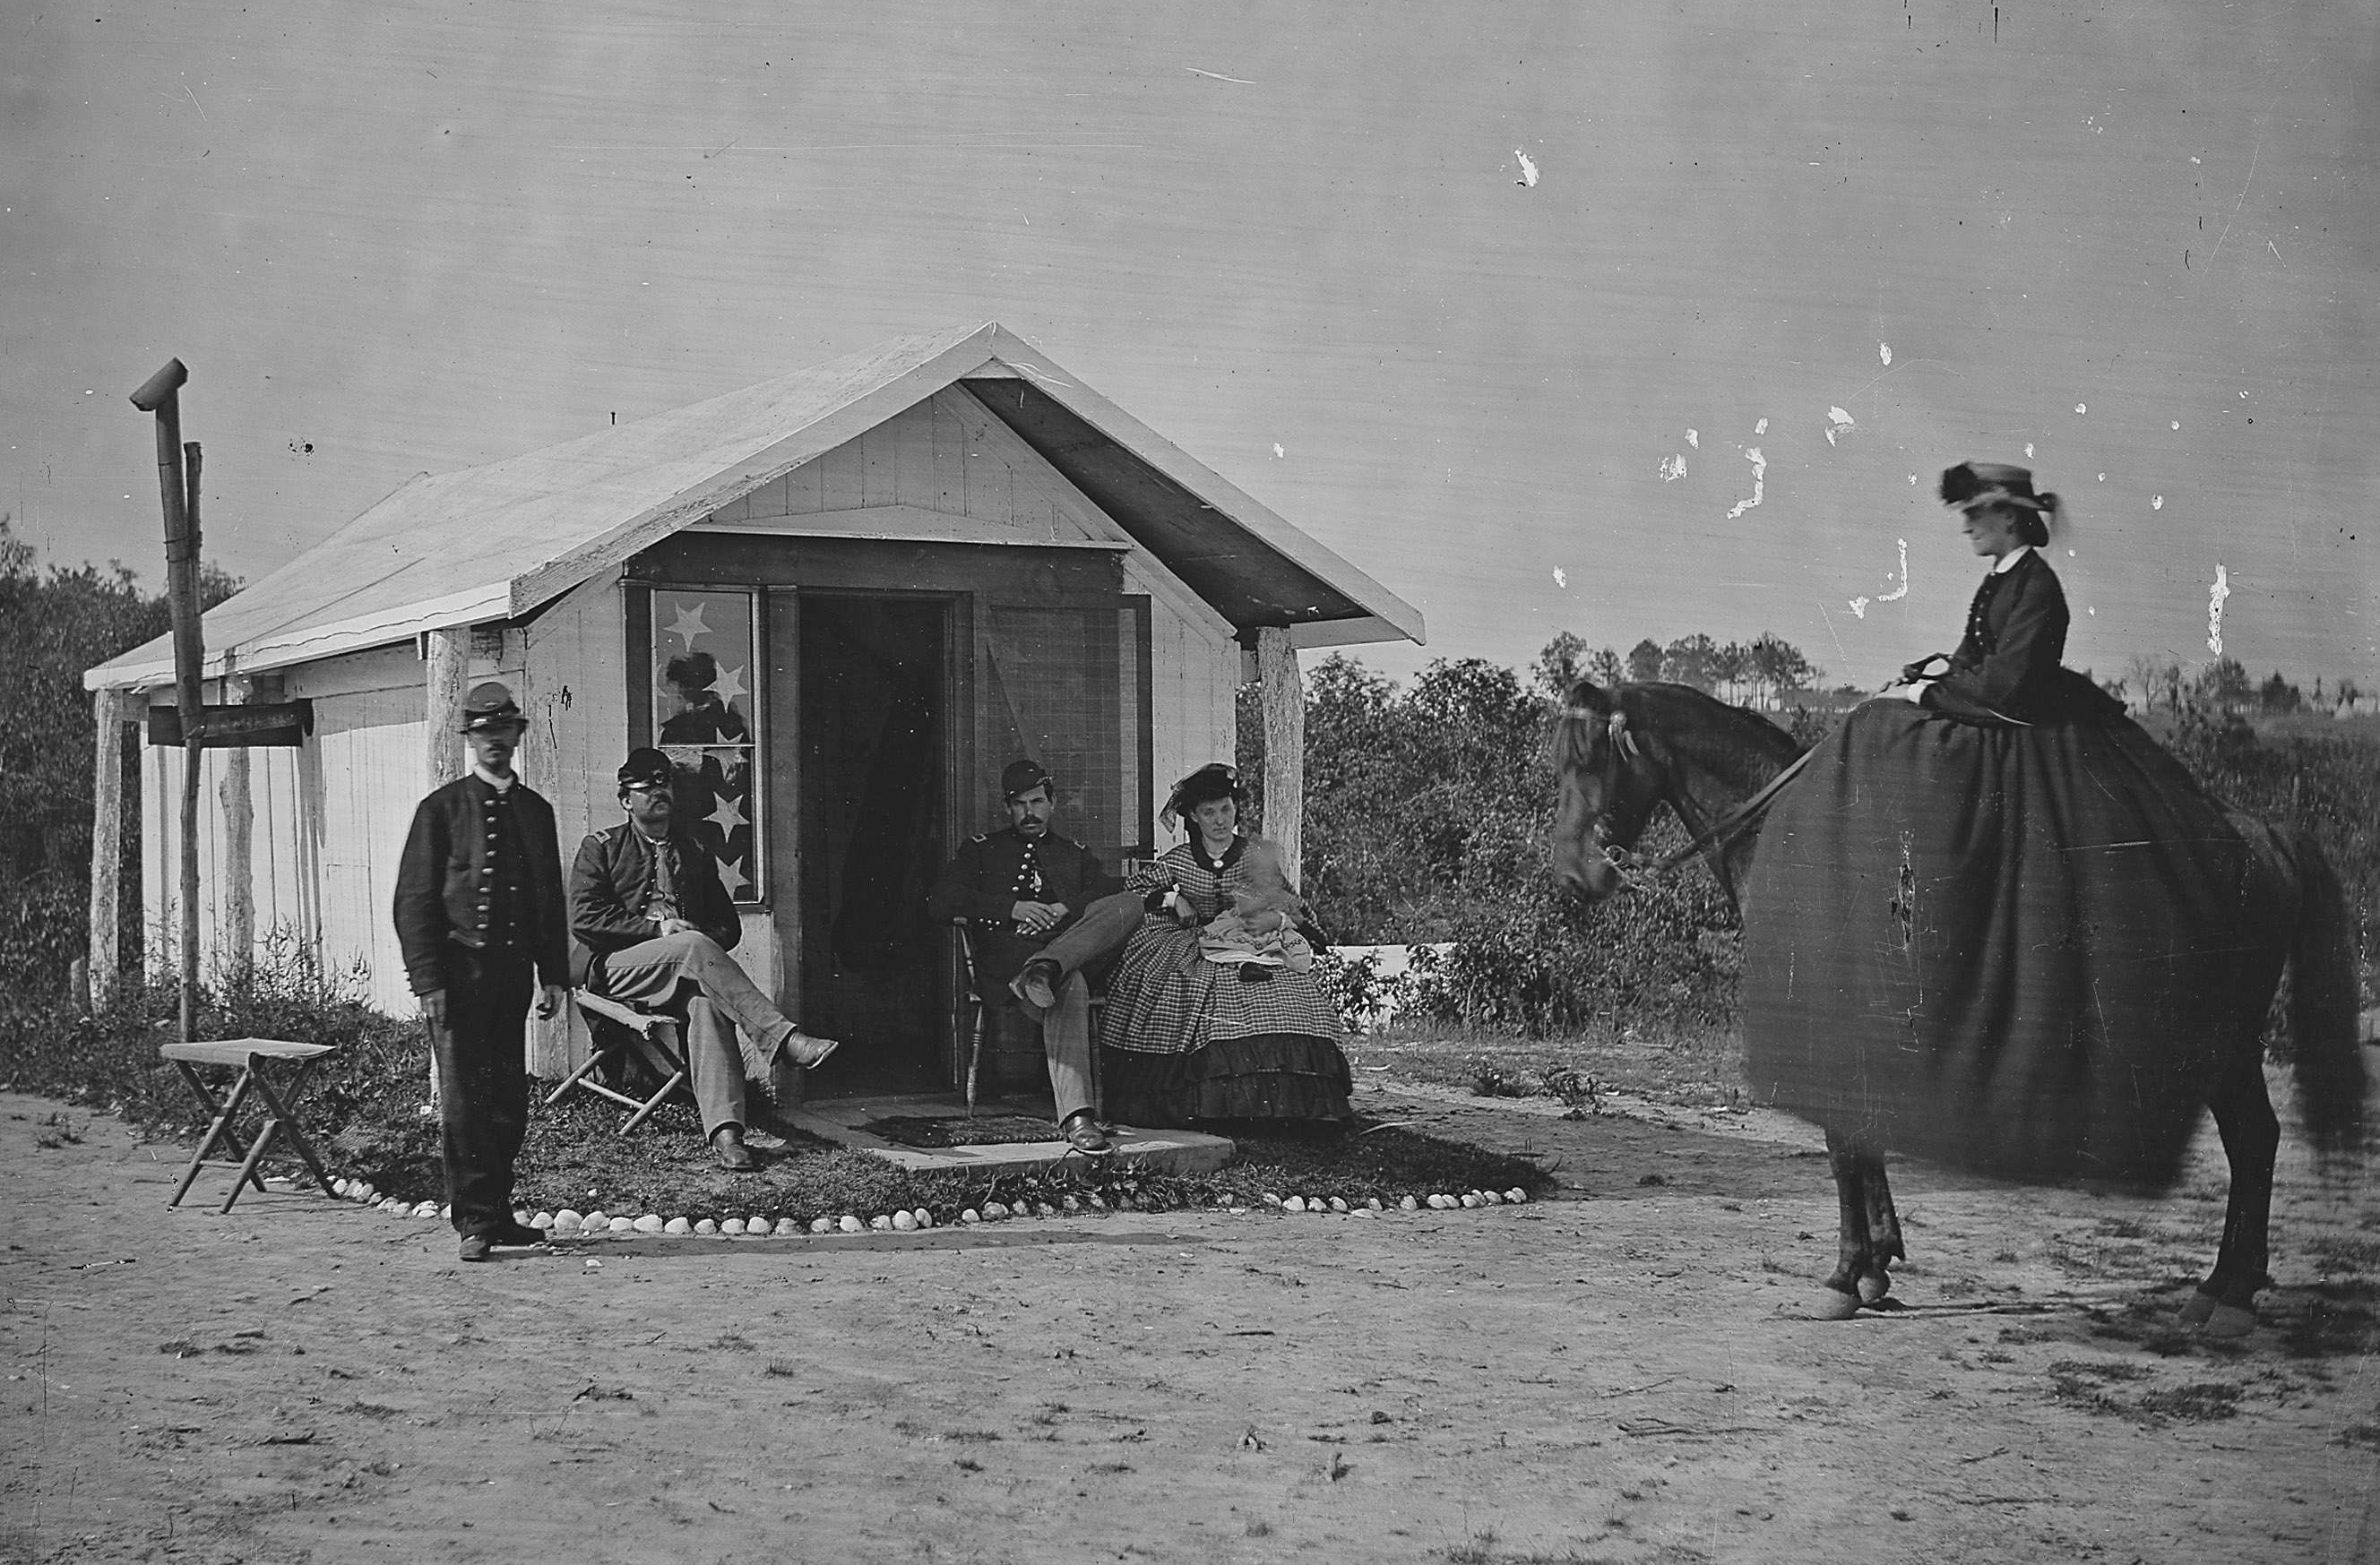 Camp Scene, Ladies in Camp